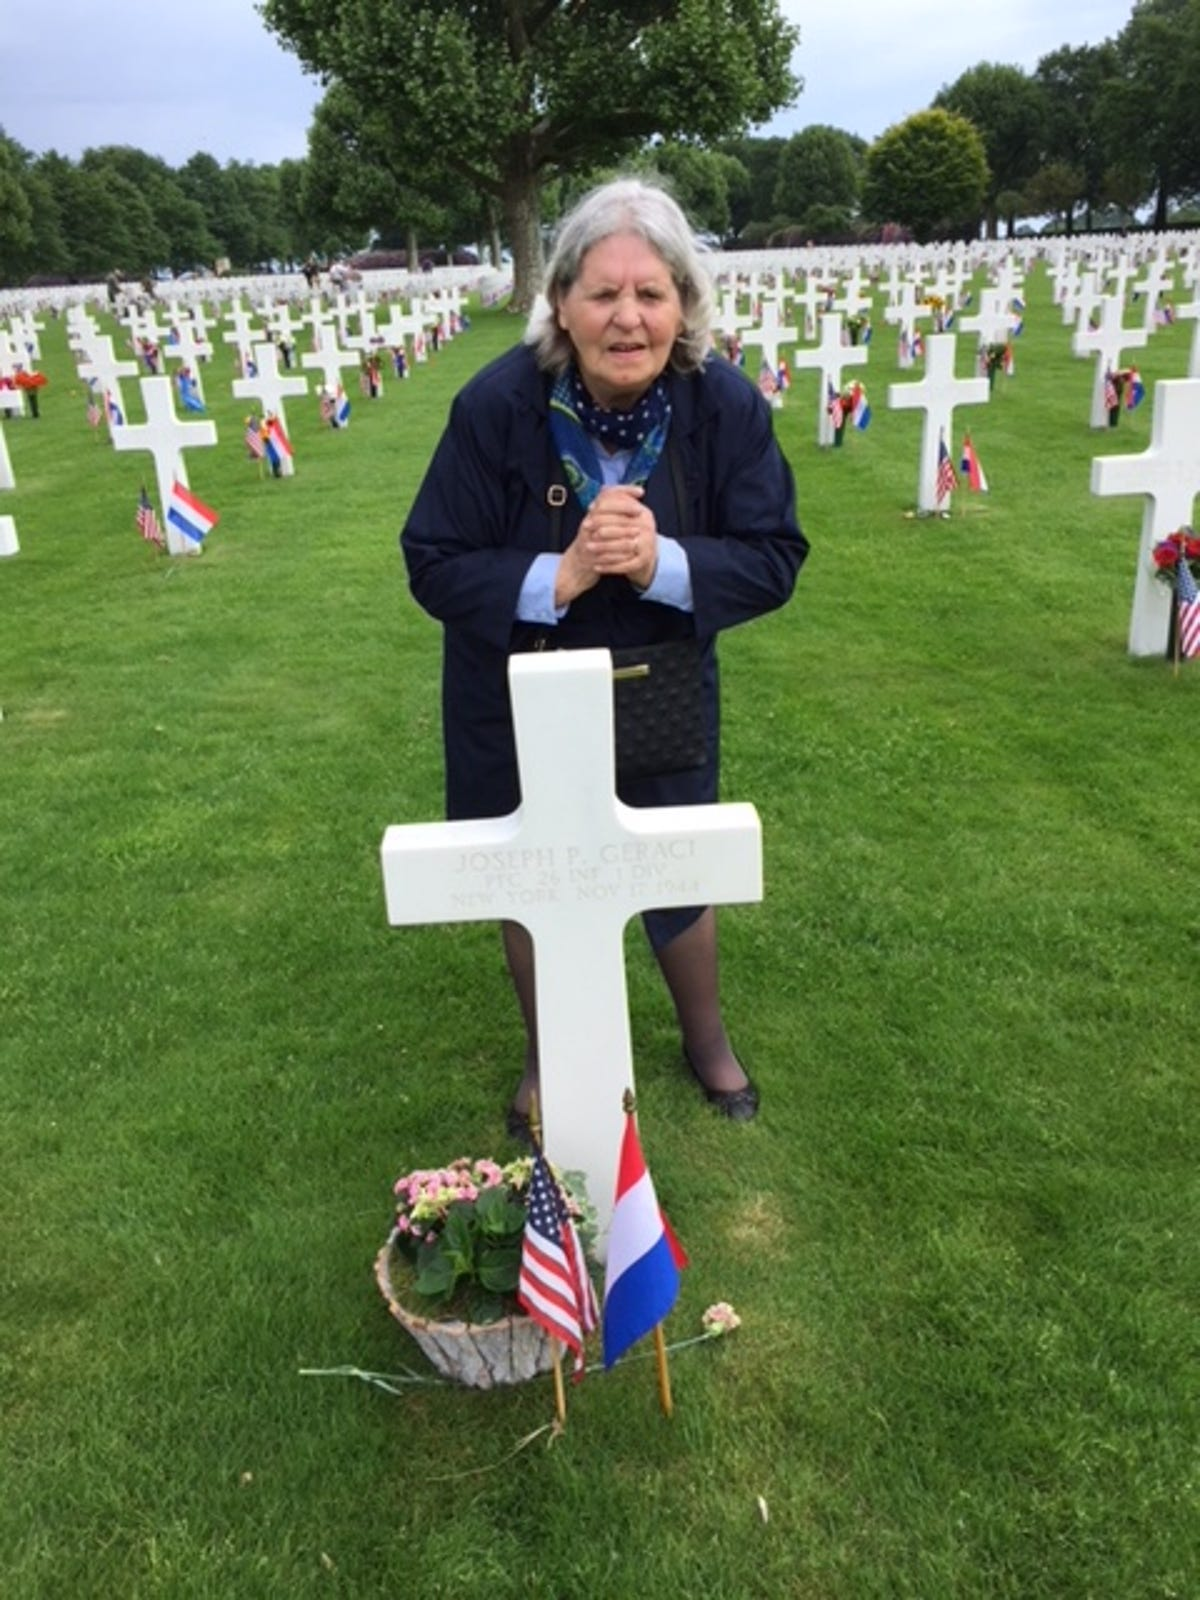 Memorial Day: WWII soldier's grave tended to by stranger for 74 years